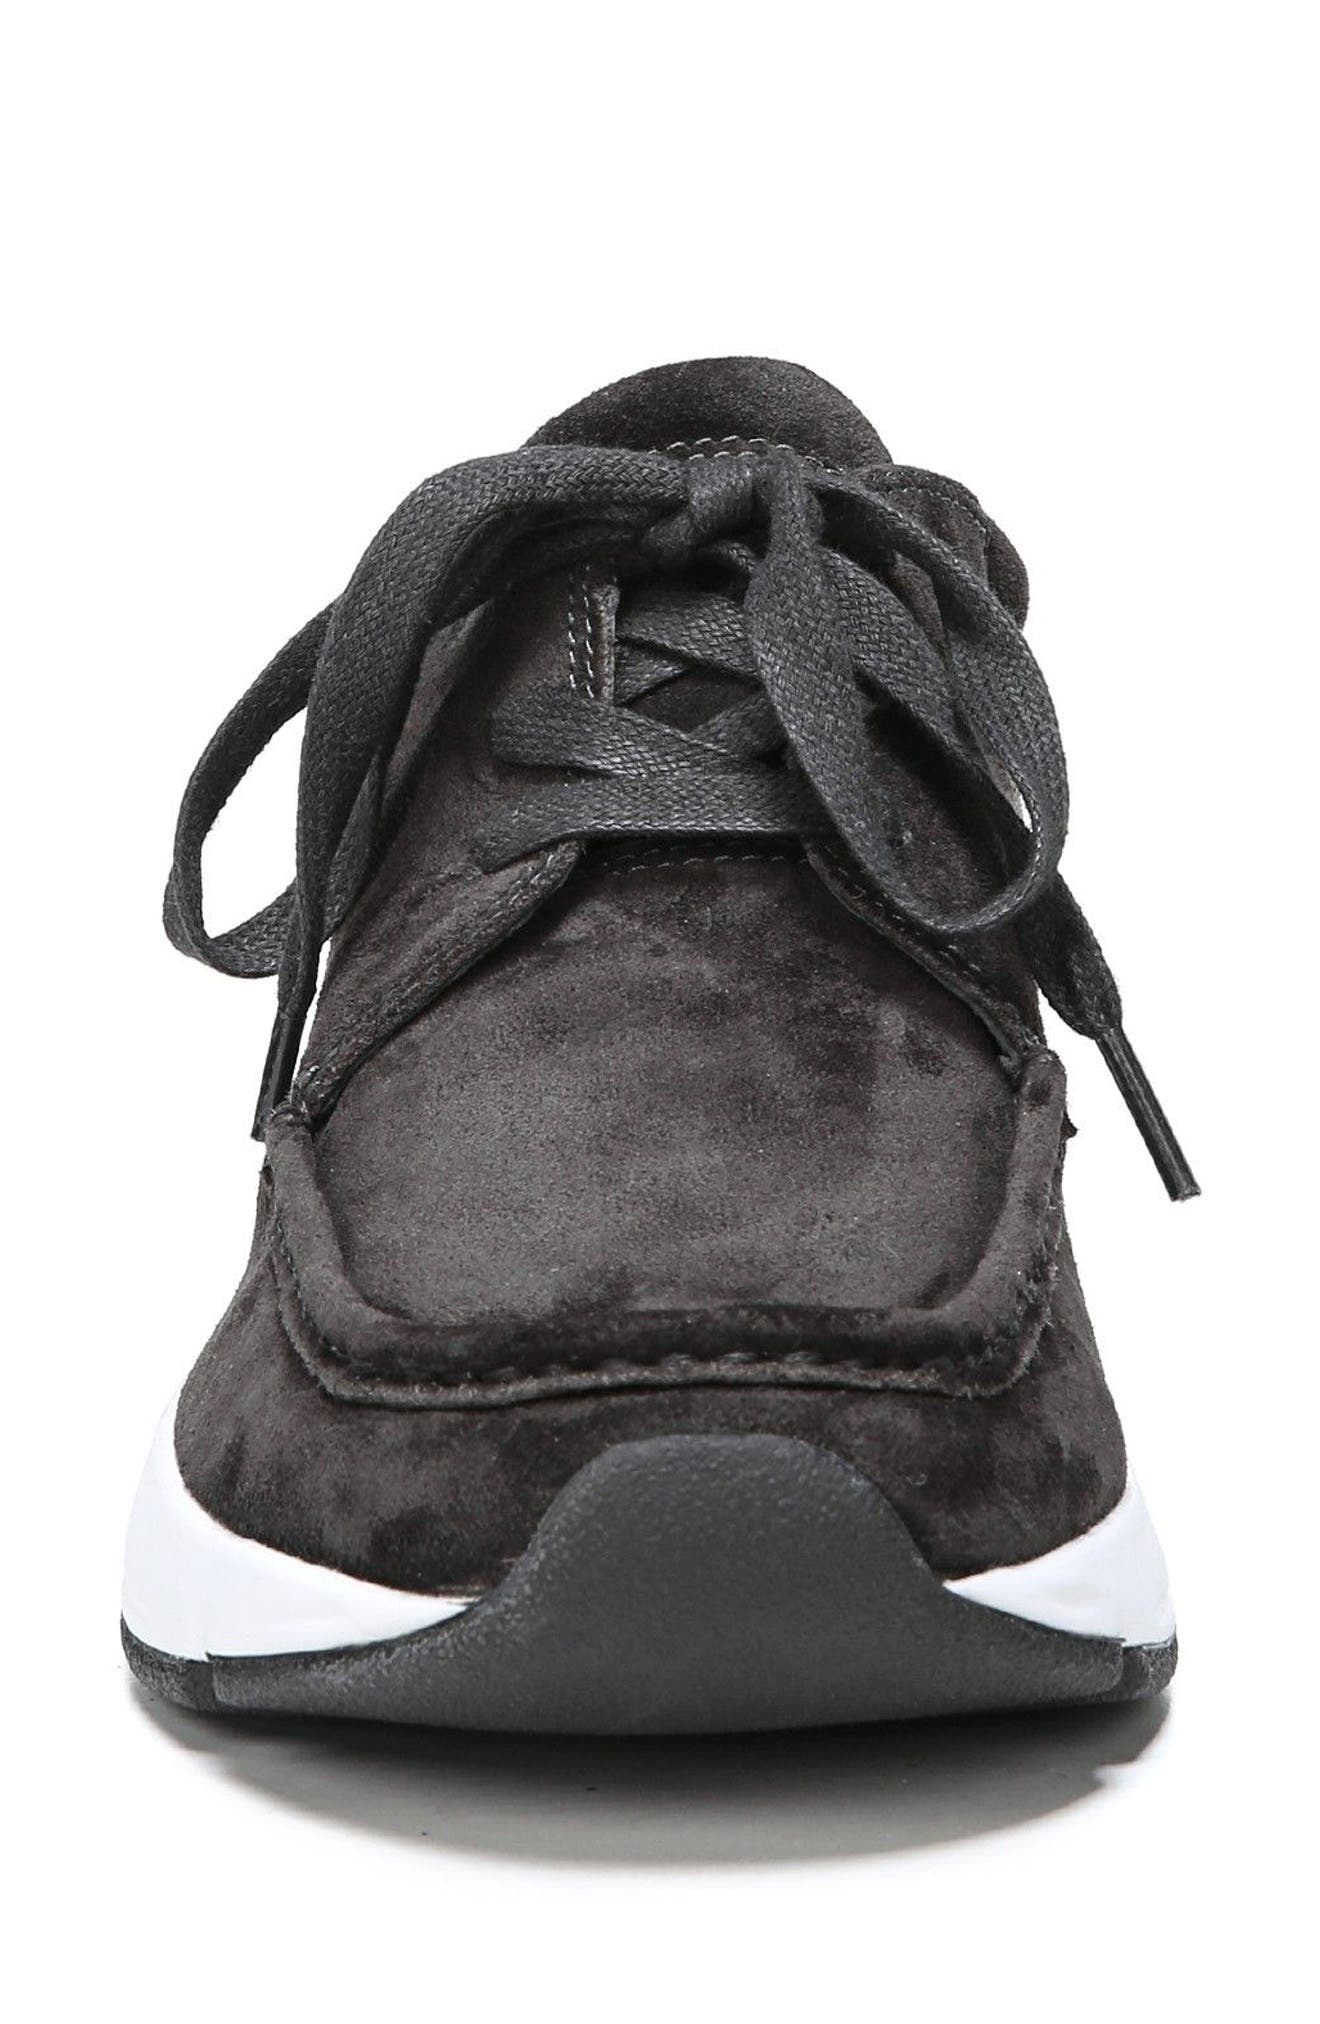 Toronto Chukka Sneaker,                             Alternate thumbnail 11, color,